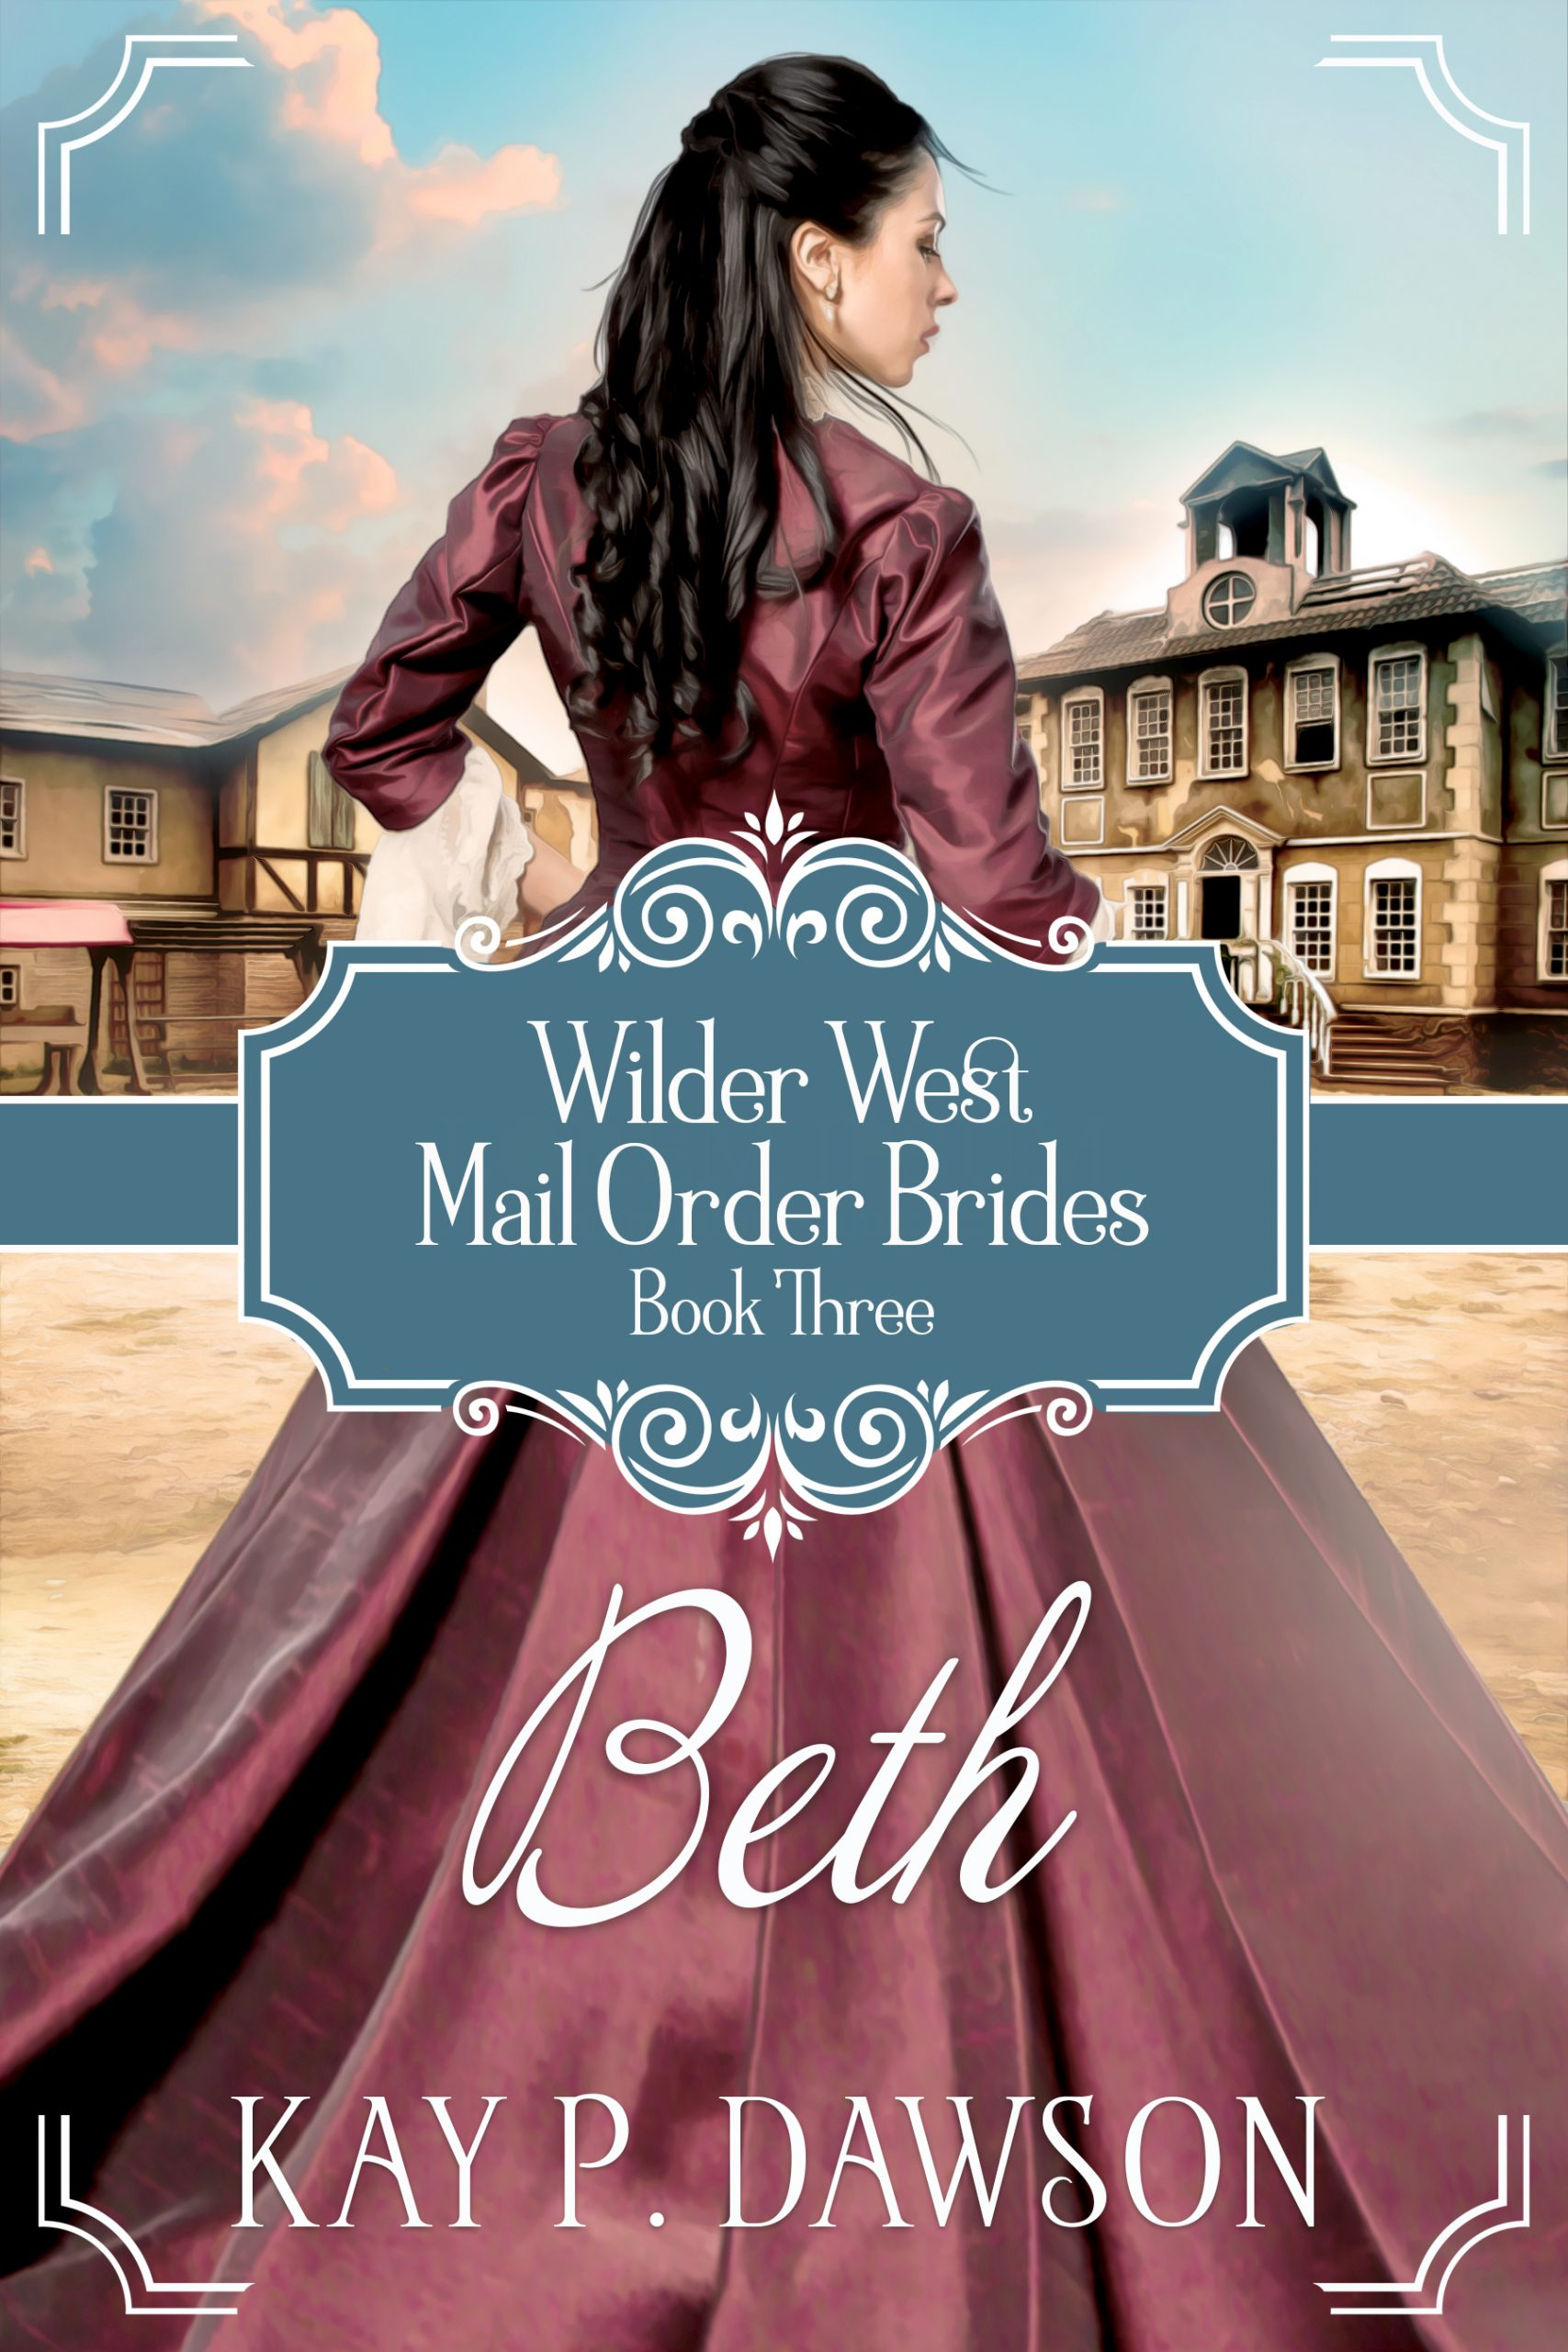 Beth - Wilder West Mail Order Brides Series